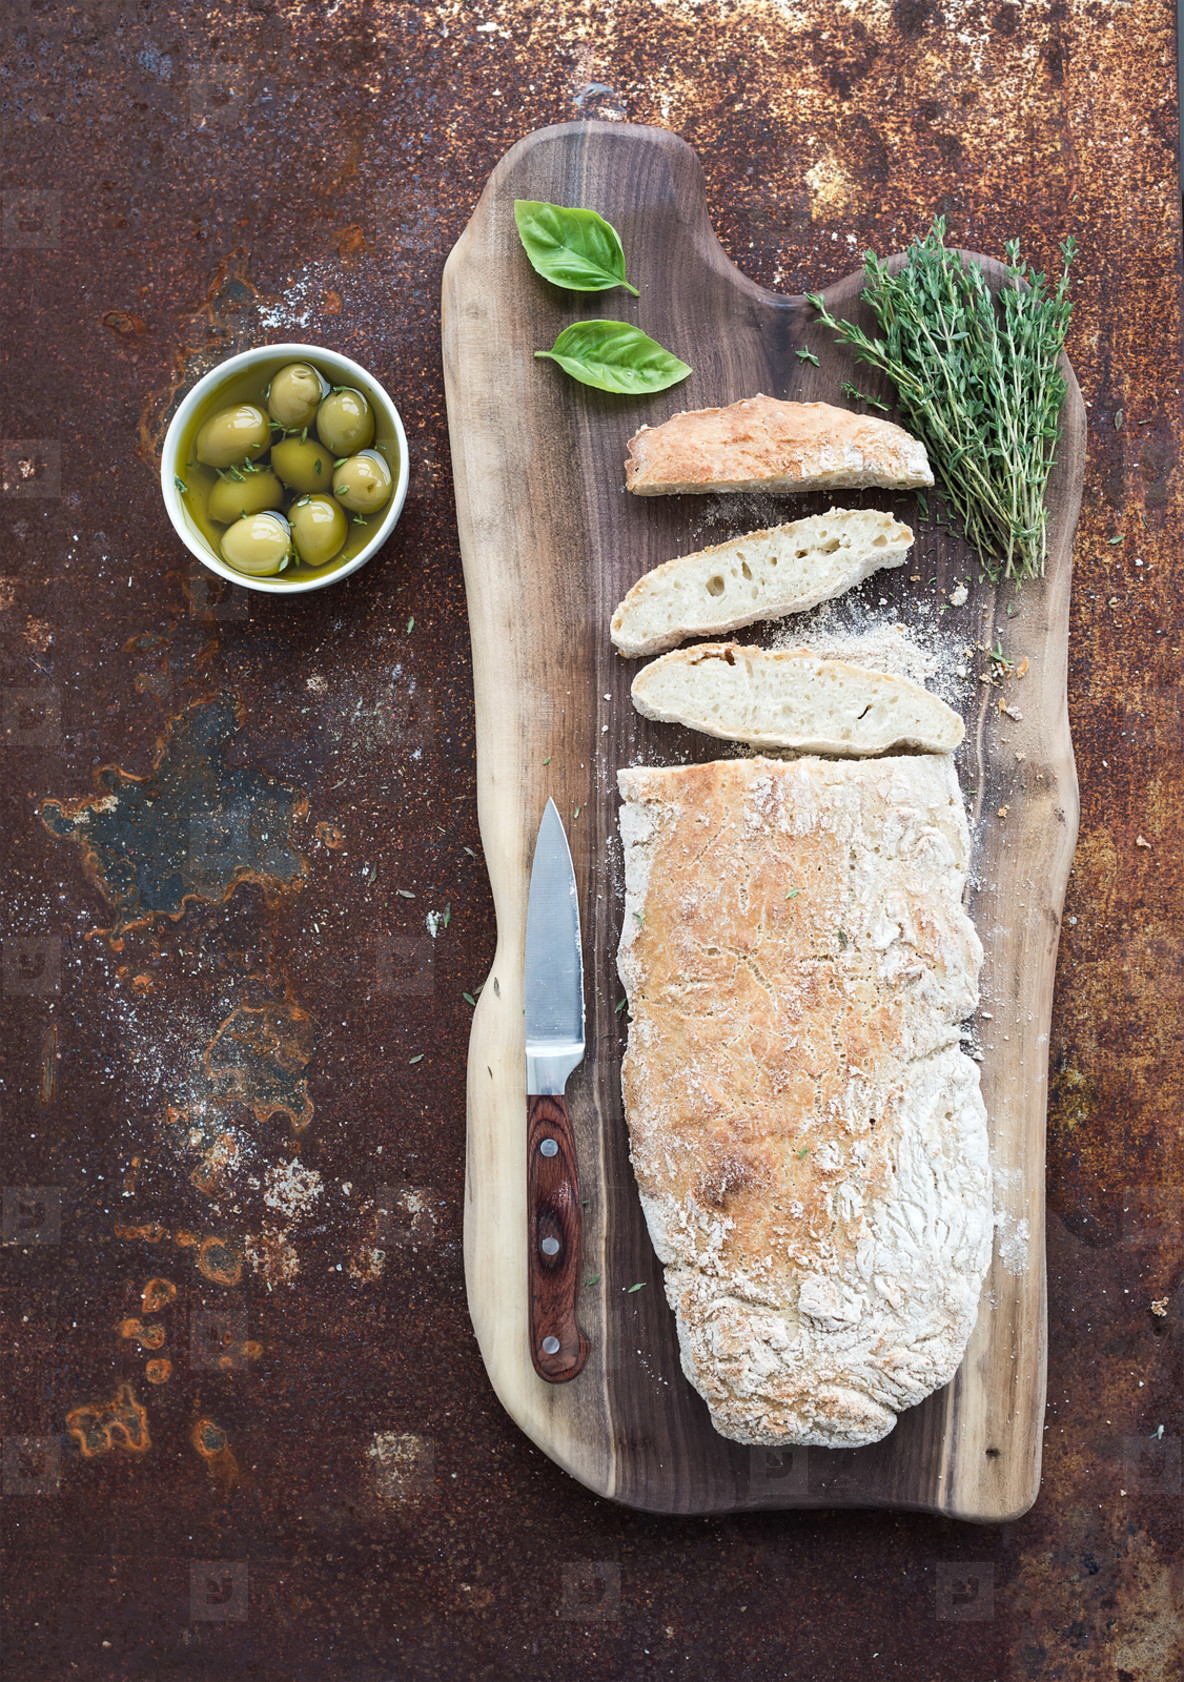 Freshly baked homemade ciabatta bread with olives  basil and thyme on walnut wood board over grunge rusty metal background  top view